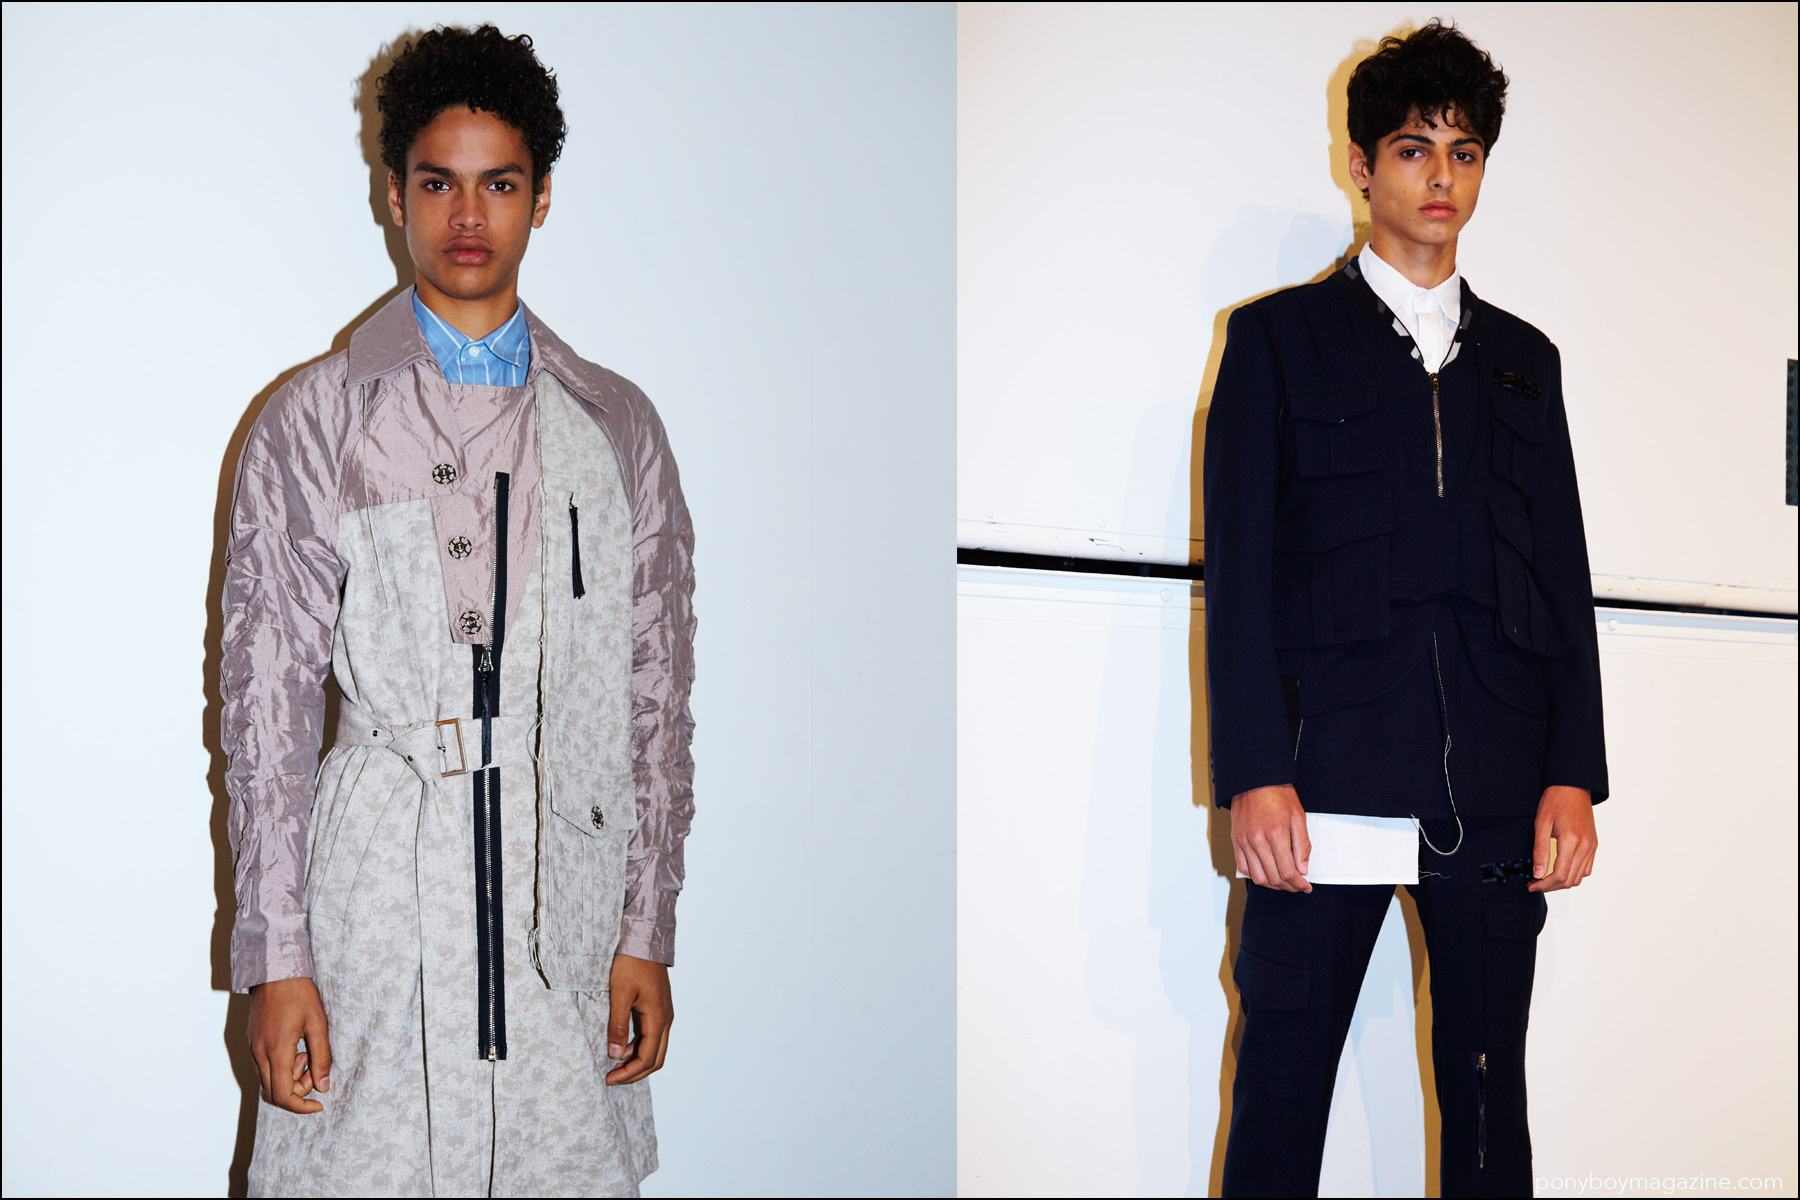 Model Noa Thomas snapped backstage in Kenneth Ning S/S17 menswear. Photographed by Alexander Thompson for Ponyboy magazine New York.